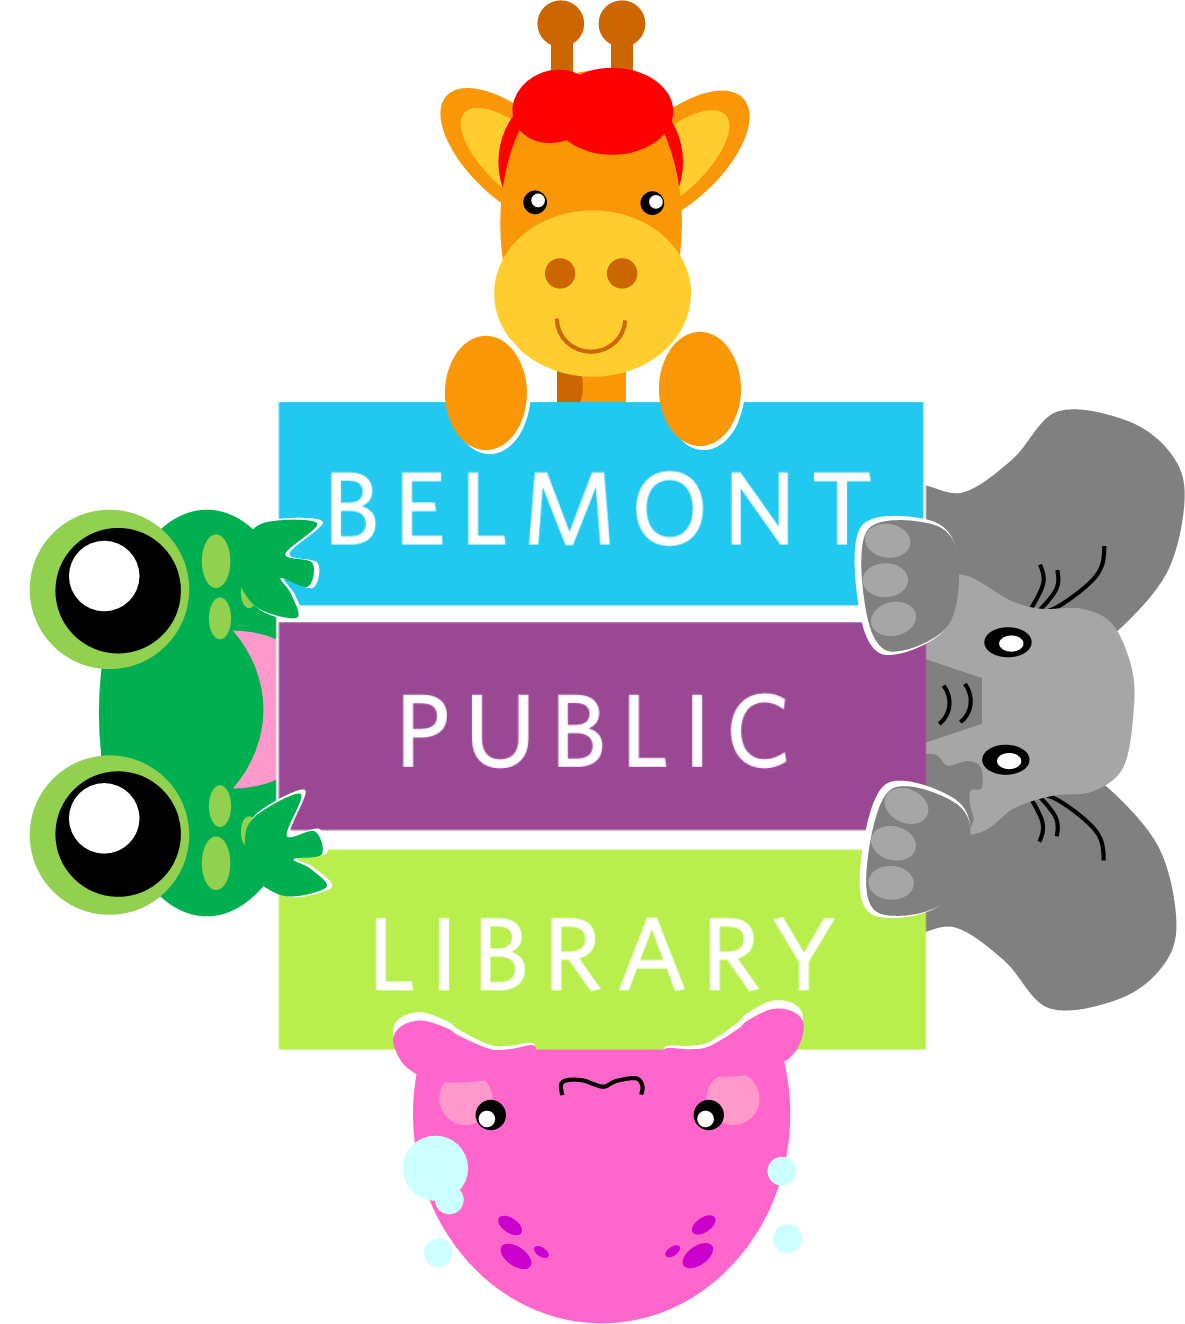 Children S Logo All Animals Childrens Logo Library Signage Public Library